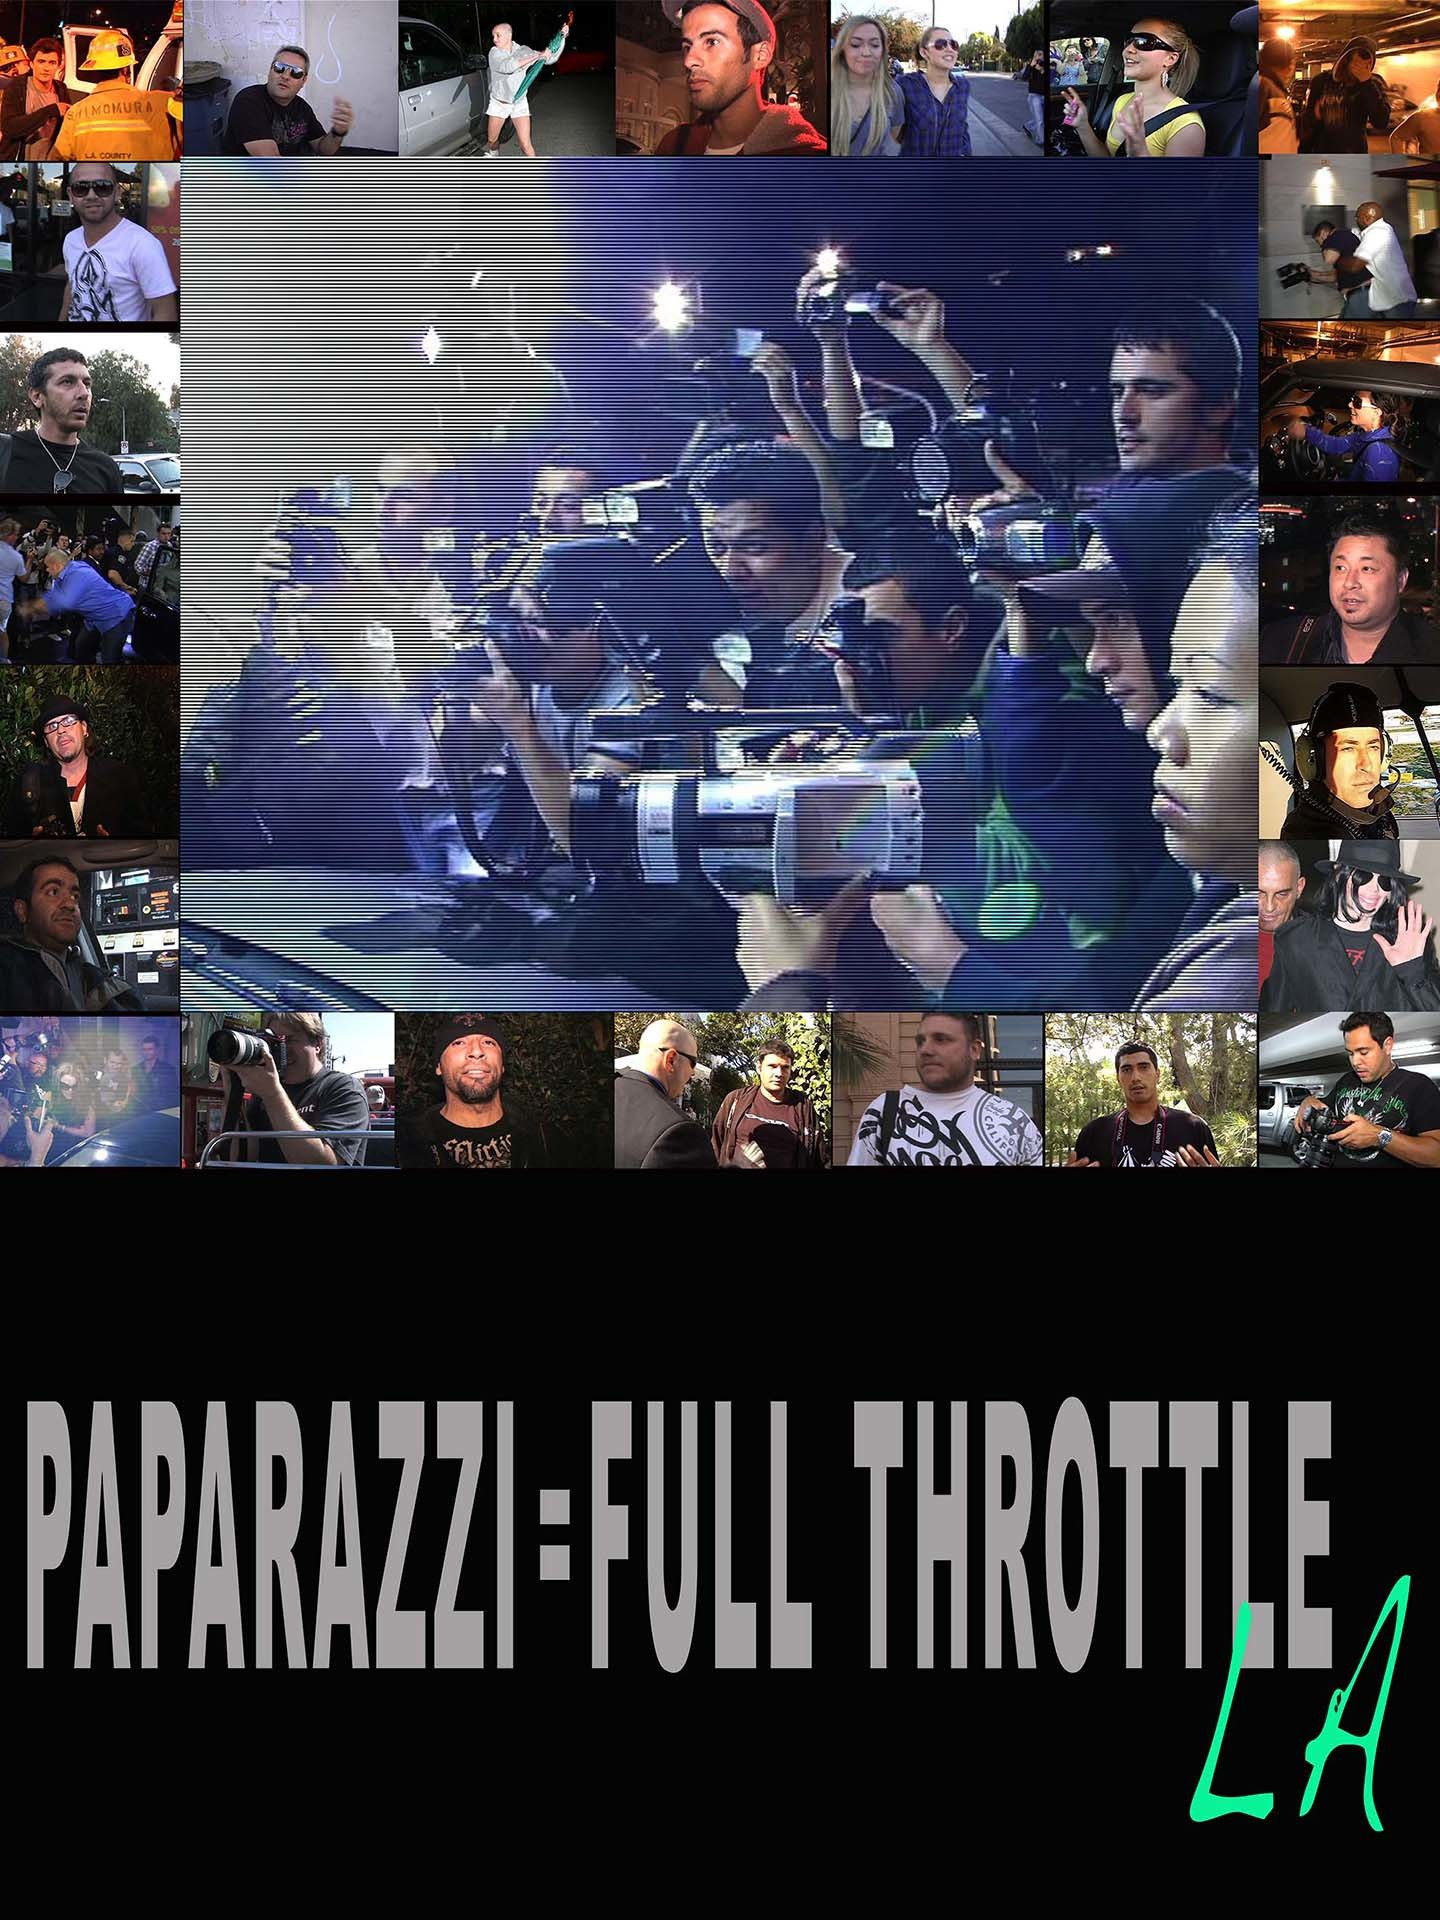 Paparazzi: Full Throttle